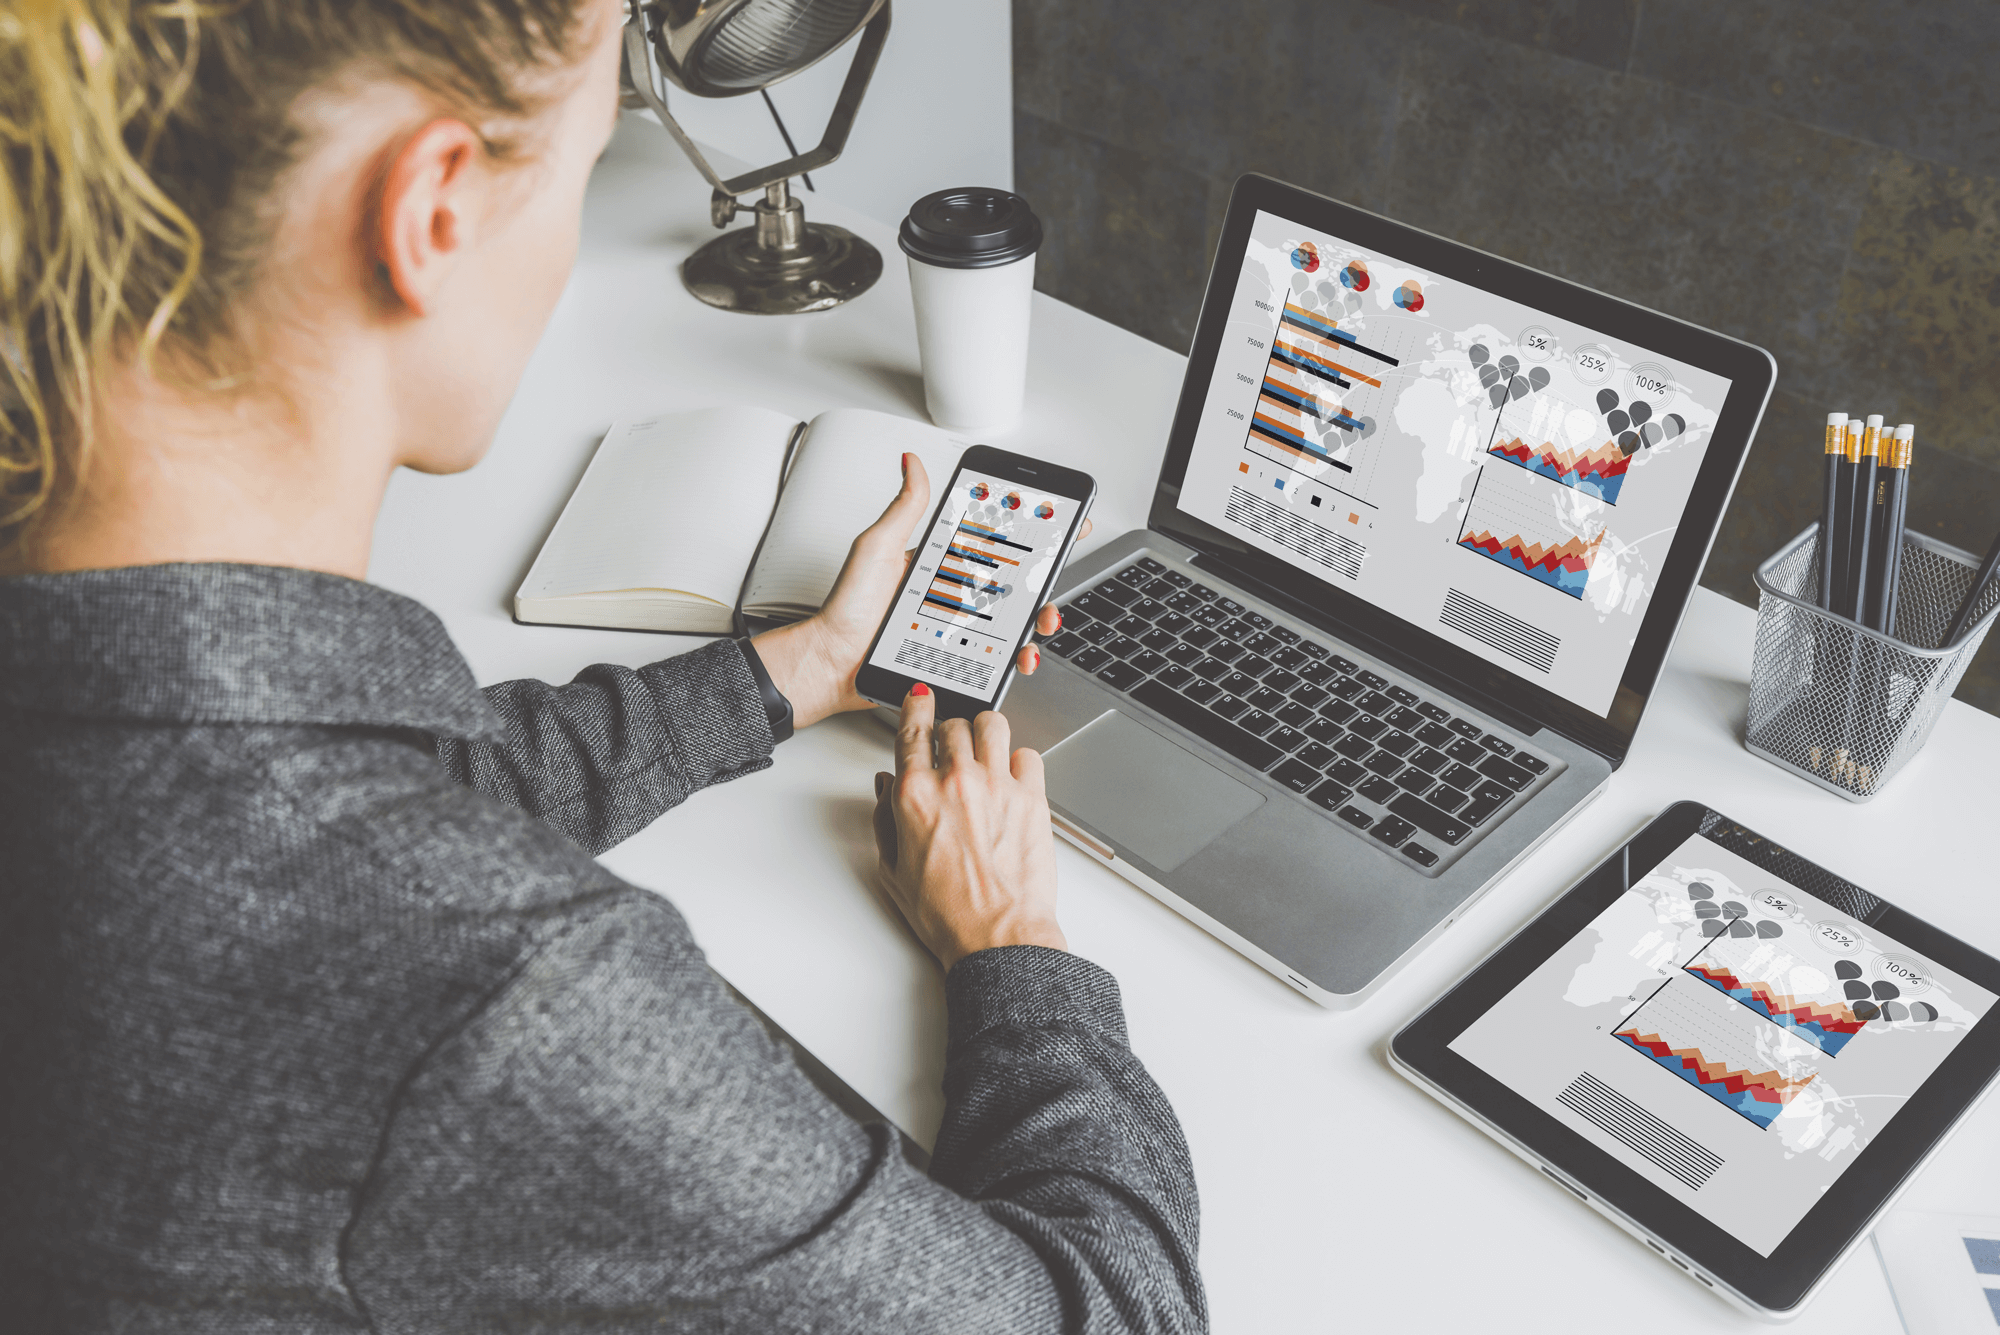 The Tableau specialist focuses on data storytelling and self-service analytics